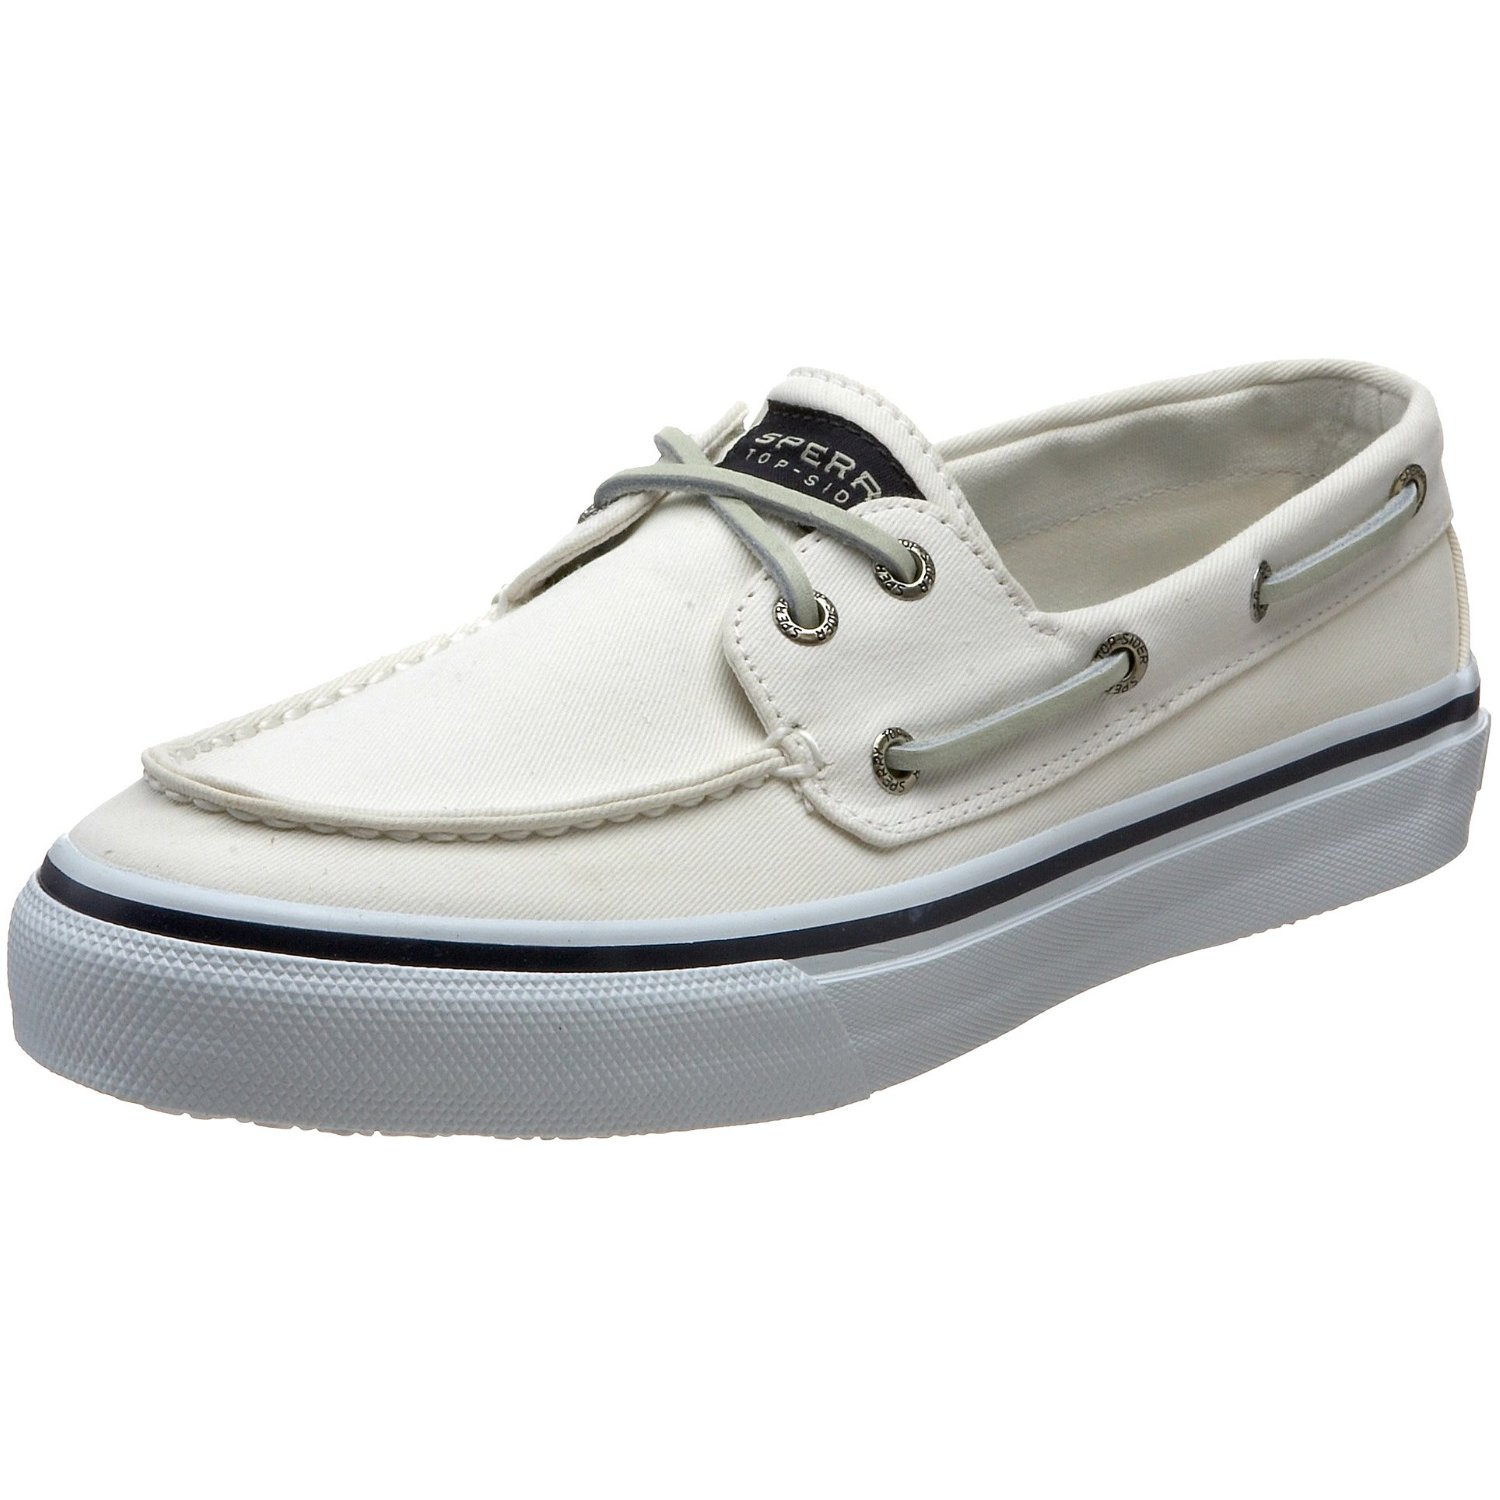 sperry top sider bahama 2eye boat shoe in white for lyst